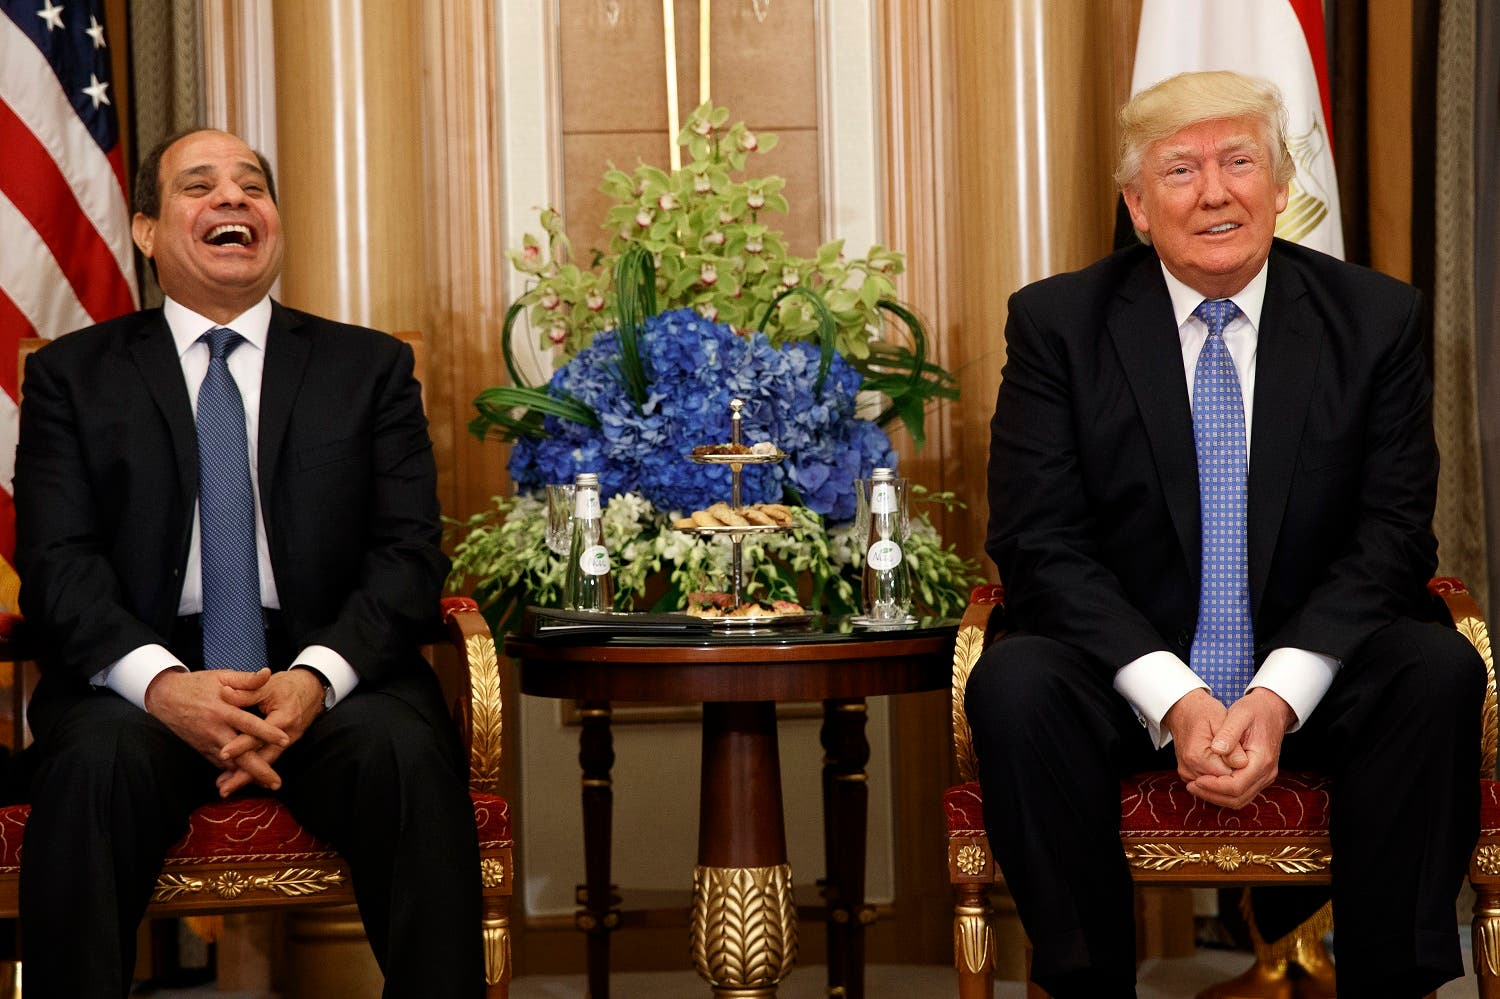 President Donald Trump jokes with Egyptian President Abdel Fattah al-Sisi during their meeting, Sunday, May 21, 2017, in Riyadh. (AP)